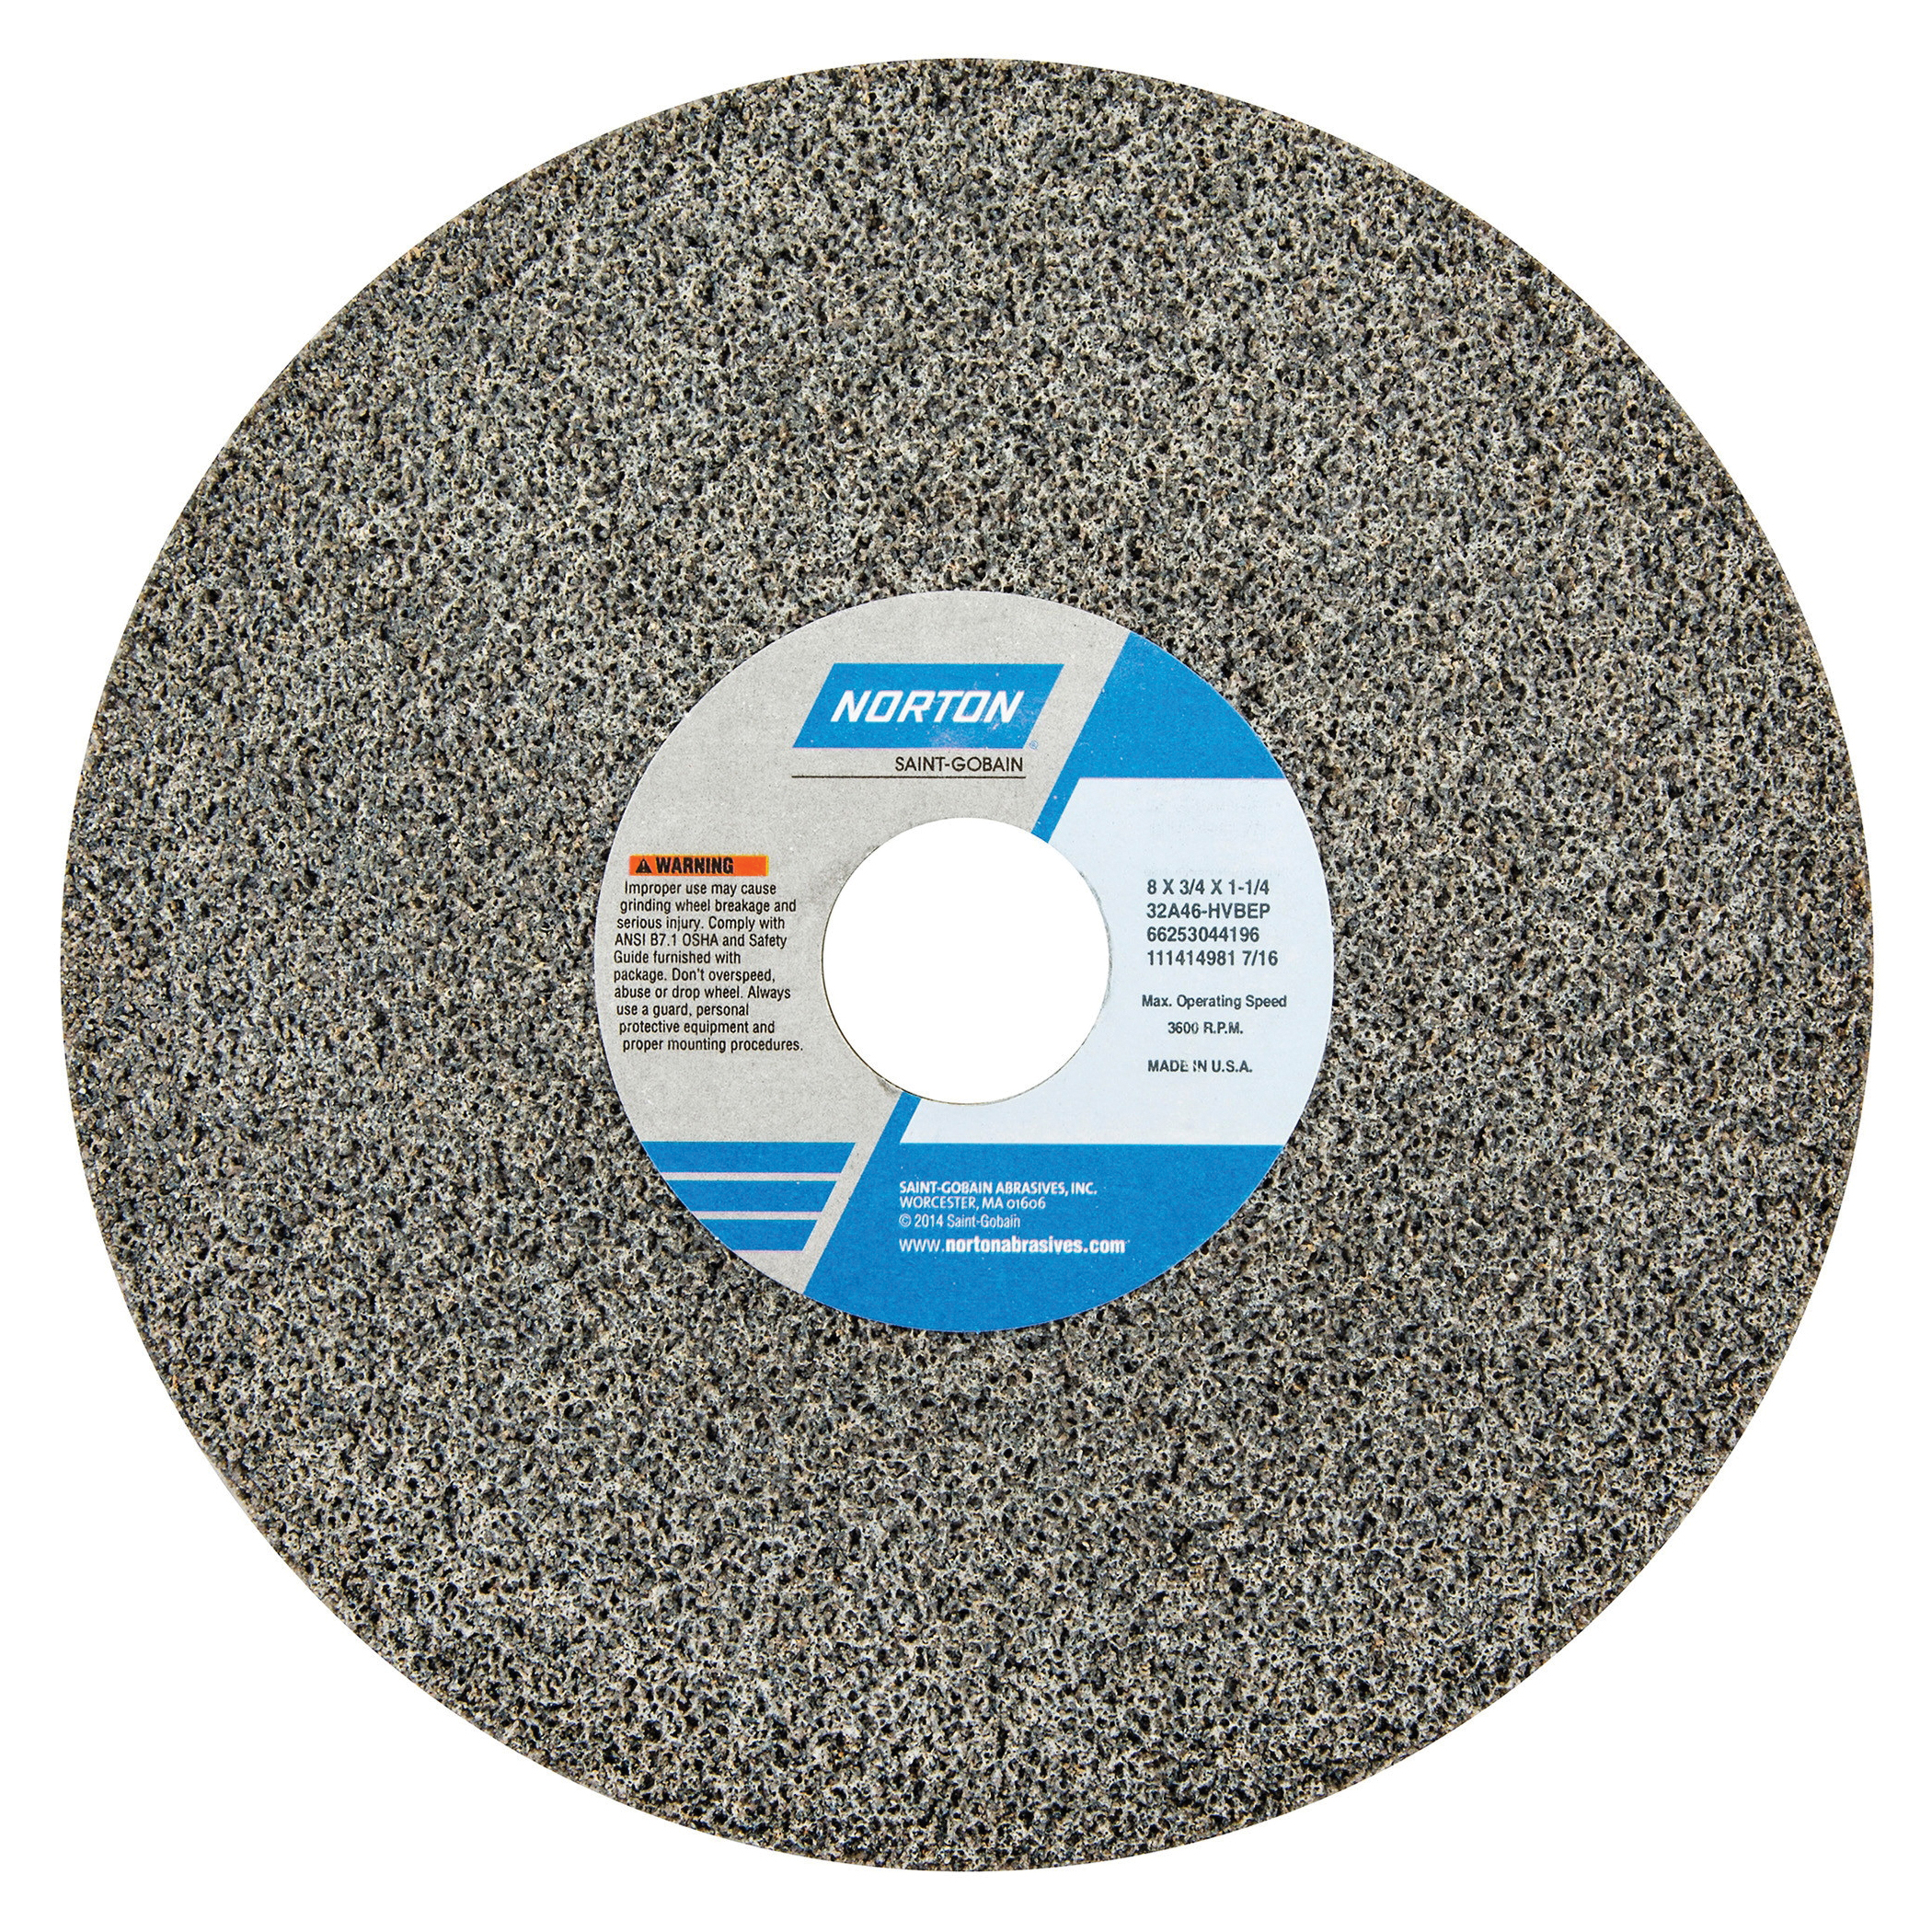 Norton® 66253044198 32A Straight Toolroom Wheel, 8 in Dia x 3/4 in THK, 1-1/4 in Center Hole, 60 Grit, Aluminum Oxide Abrasive